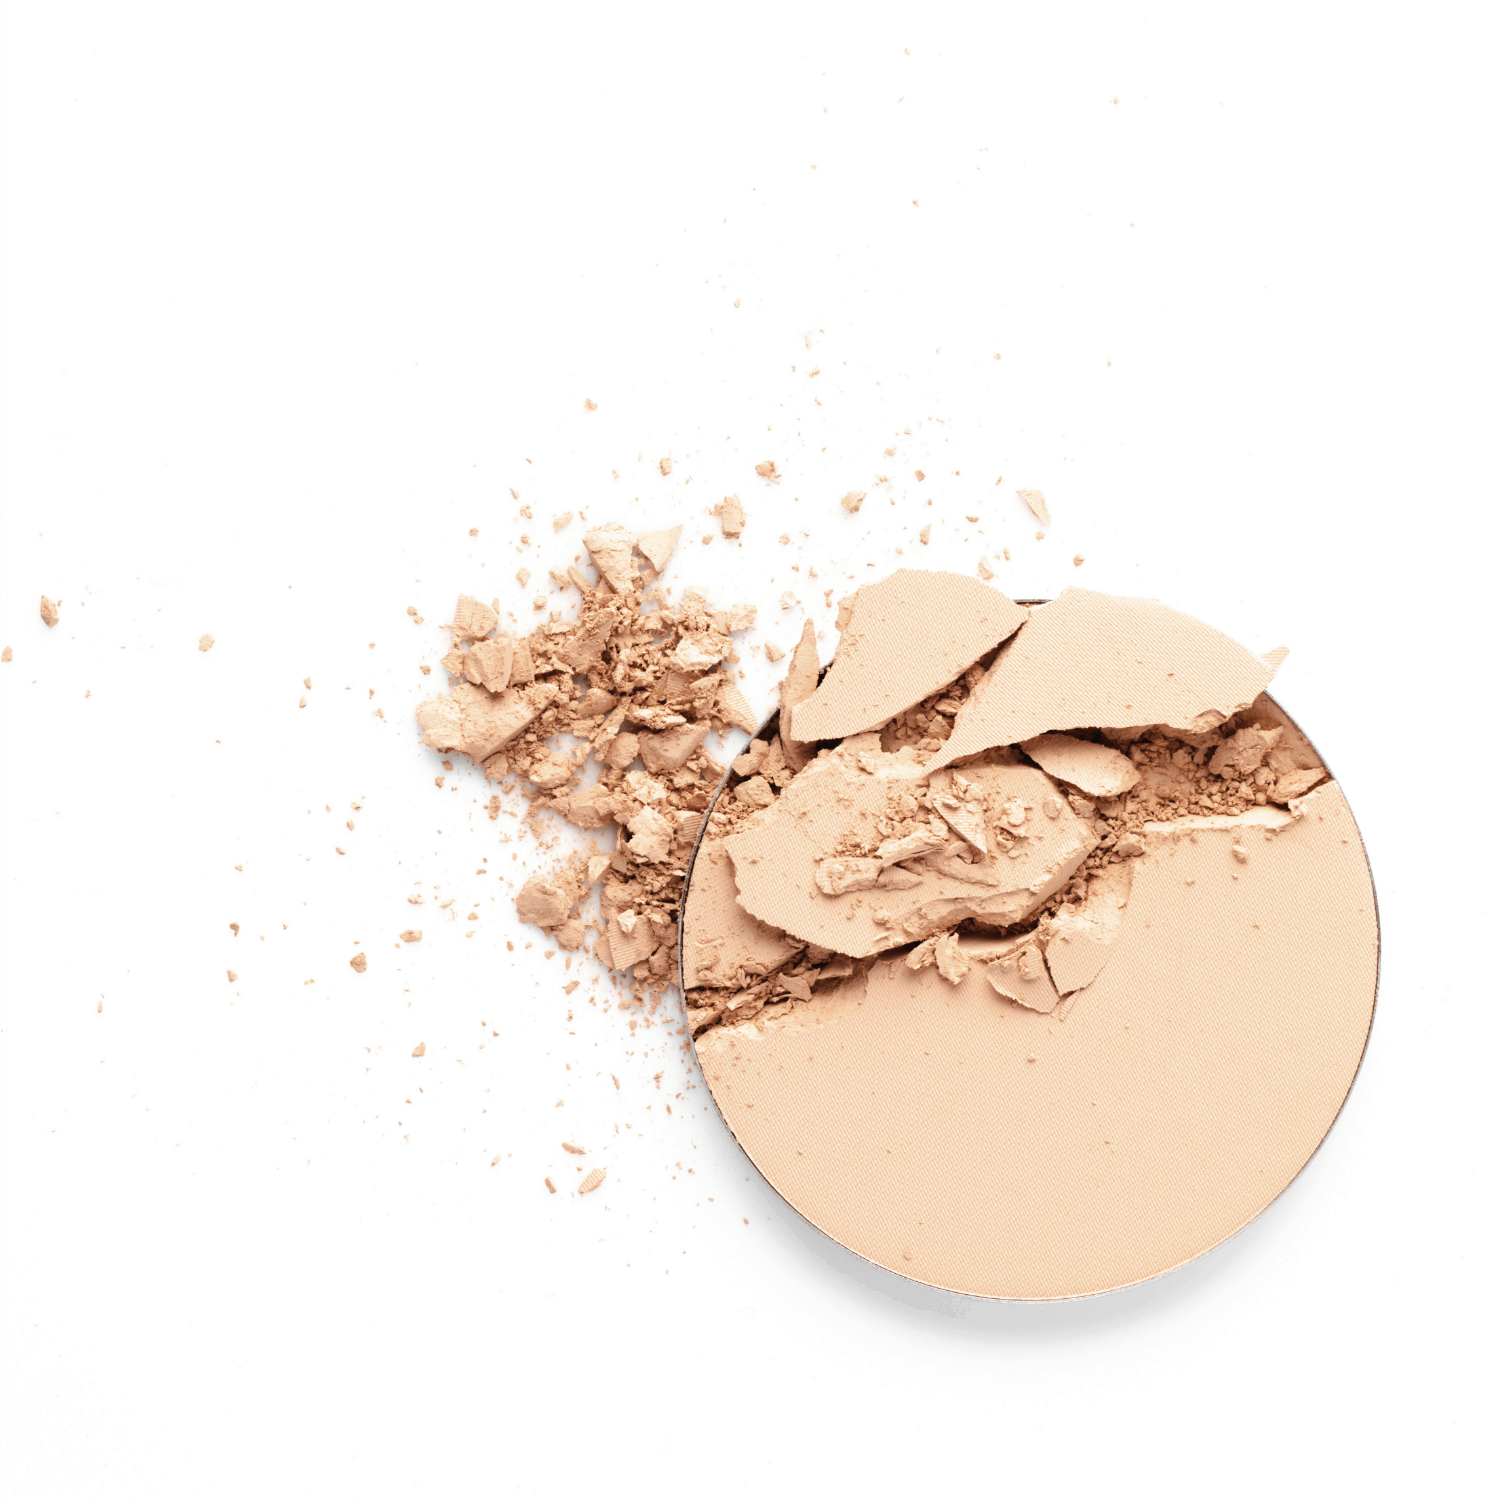 51 Top Drugstore Foundations Powders And Concealers 2020 Safe And Non Toxic Get Green Be Well